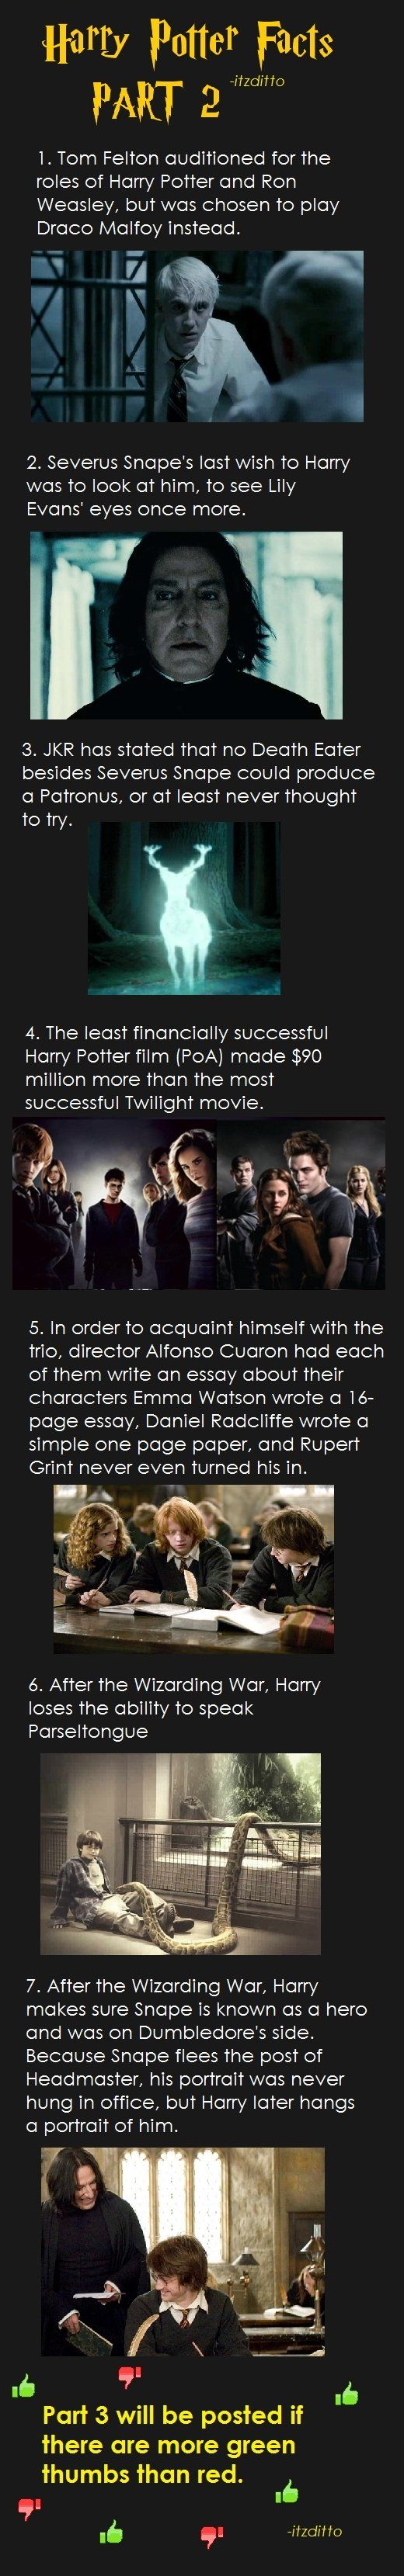 Harry Potter Facts Part 2. Part 5: funnyjunk.com/funny_pictures/2403904/Harry+Potter+Facts+Part+5/ Part 4: funnyjunk.com/funny_pictures/2399572/Harry+Potter+Fac